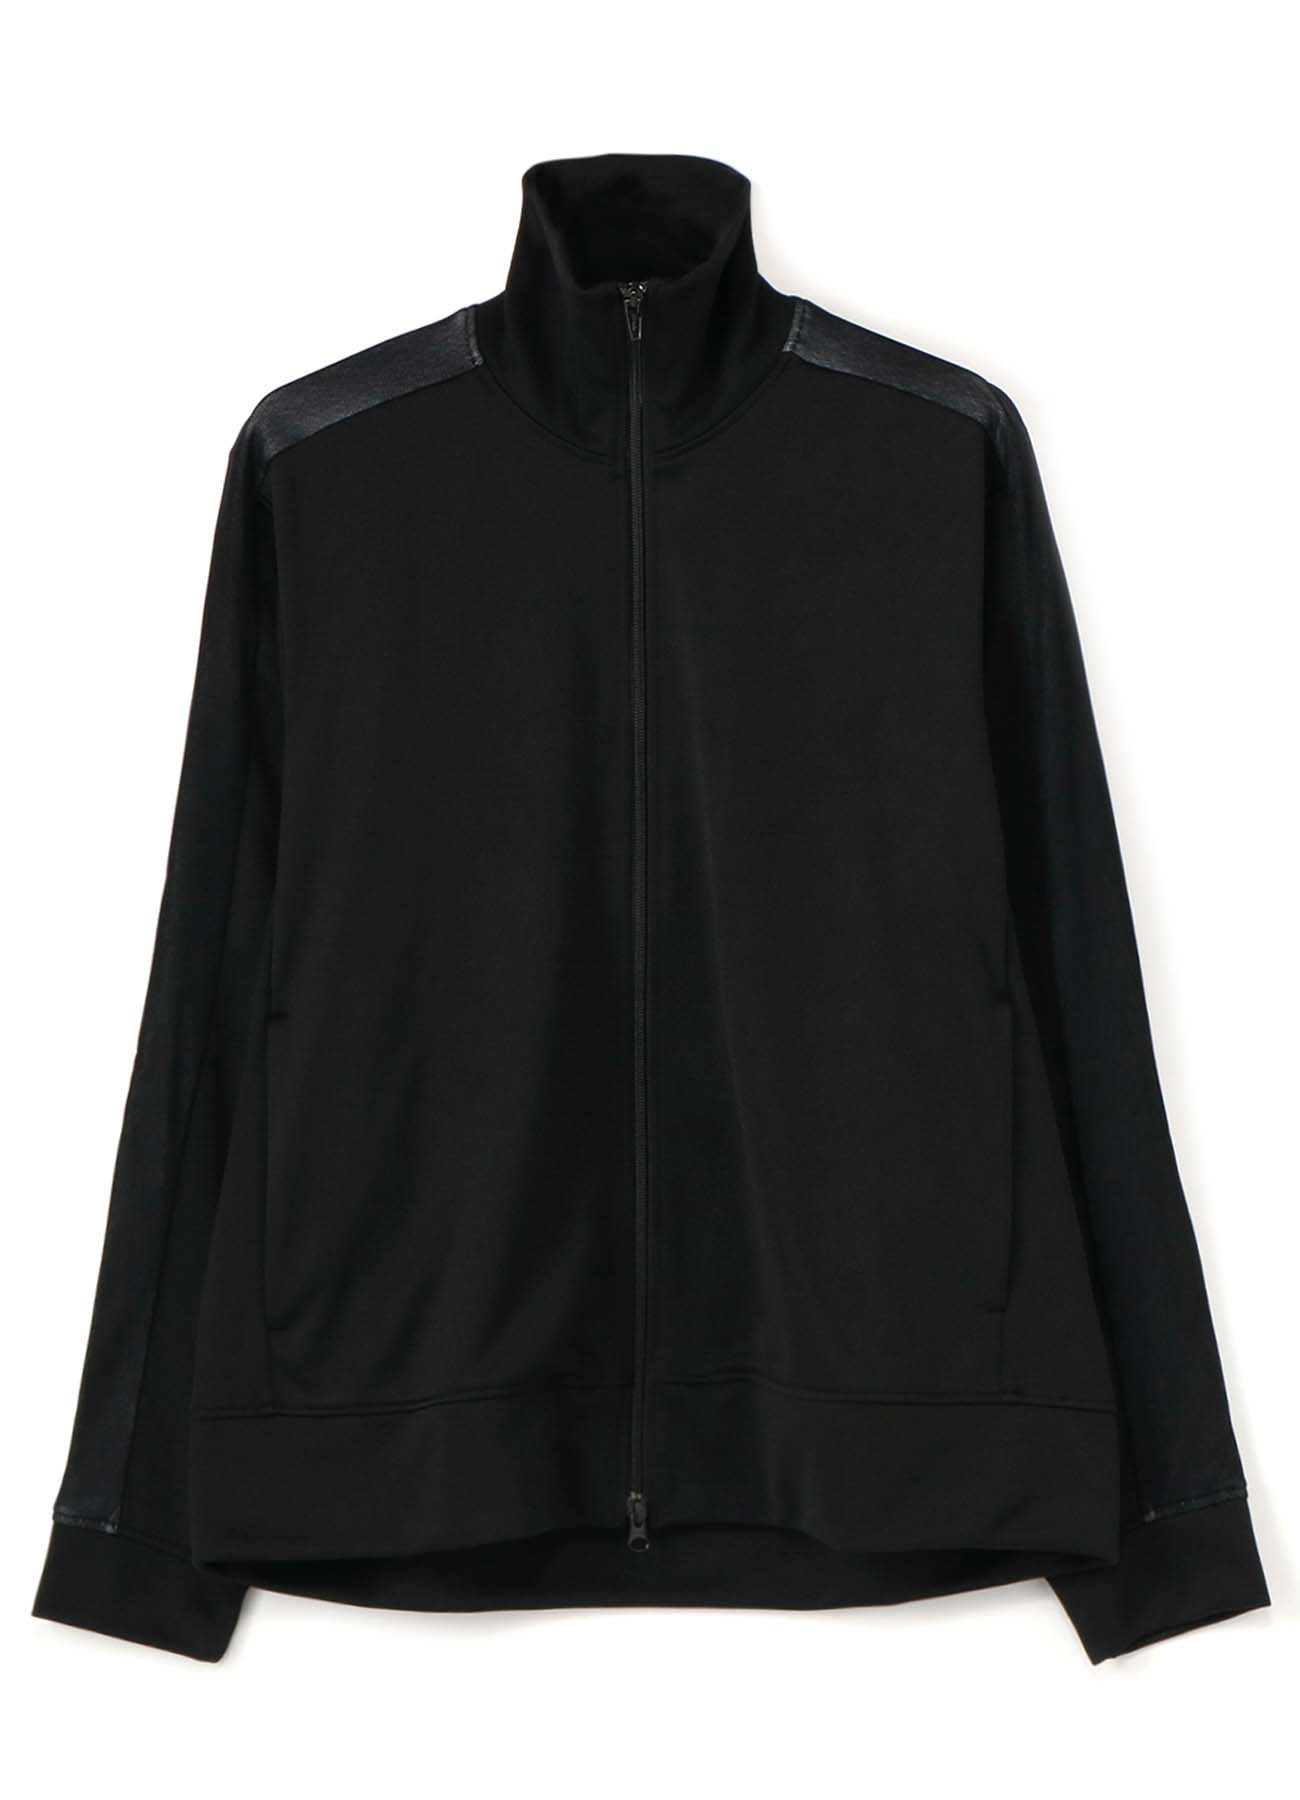 Pe/Smooth Jersey 「I am an animal making clothes.」Tulle Track Jacket